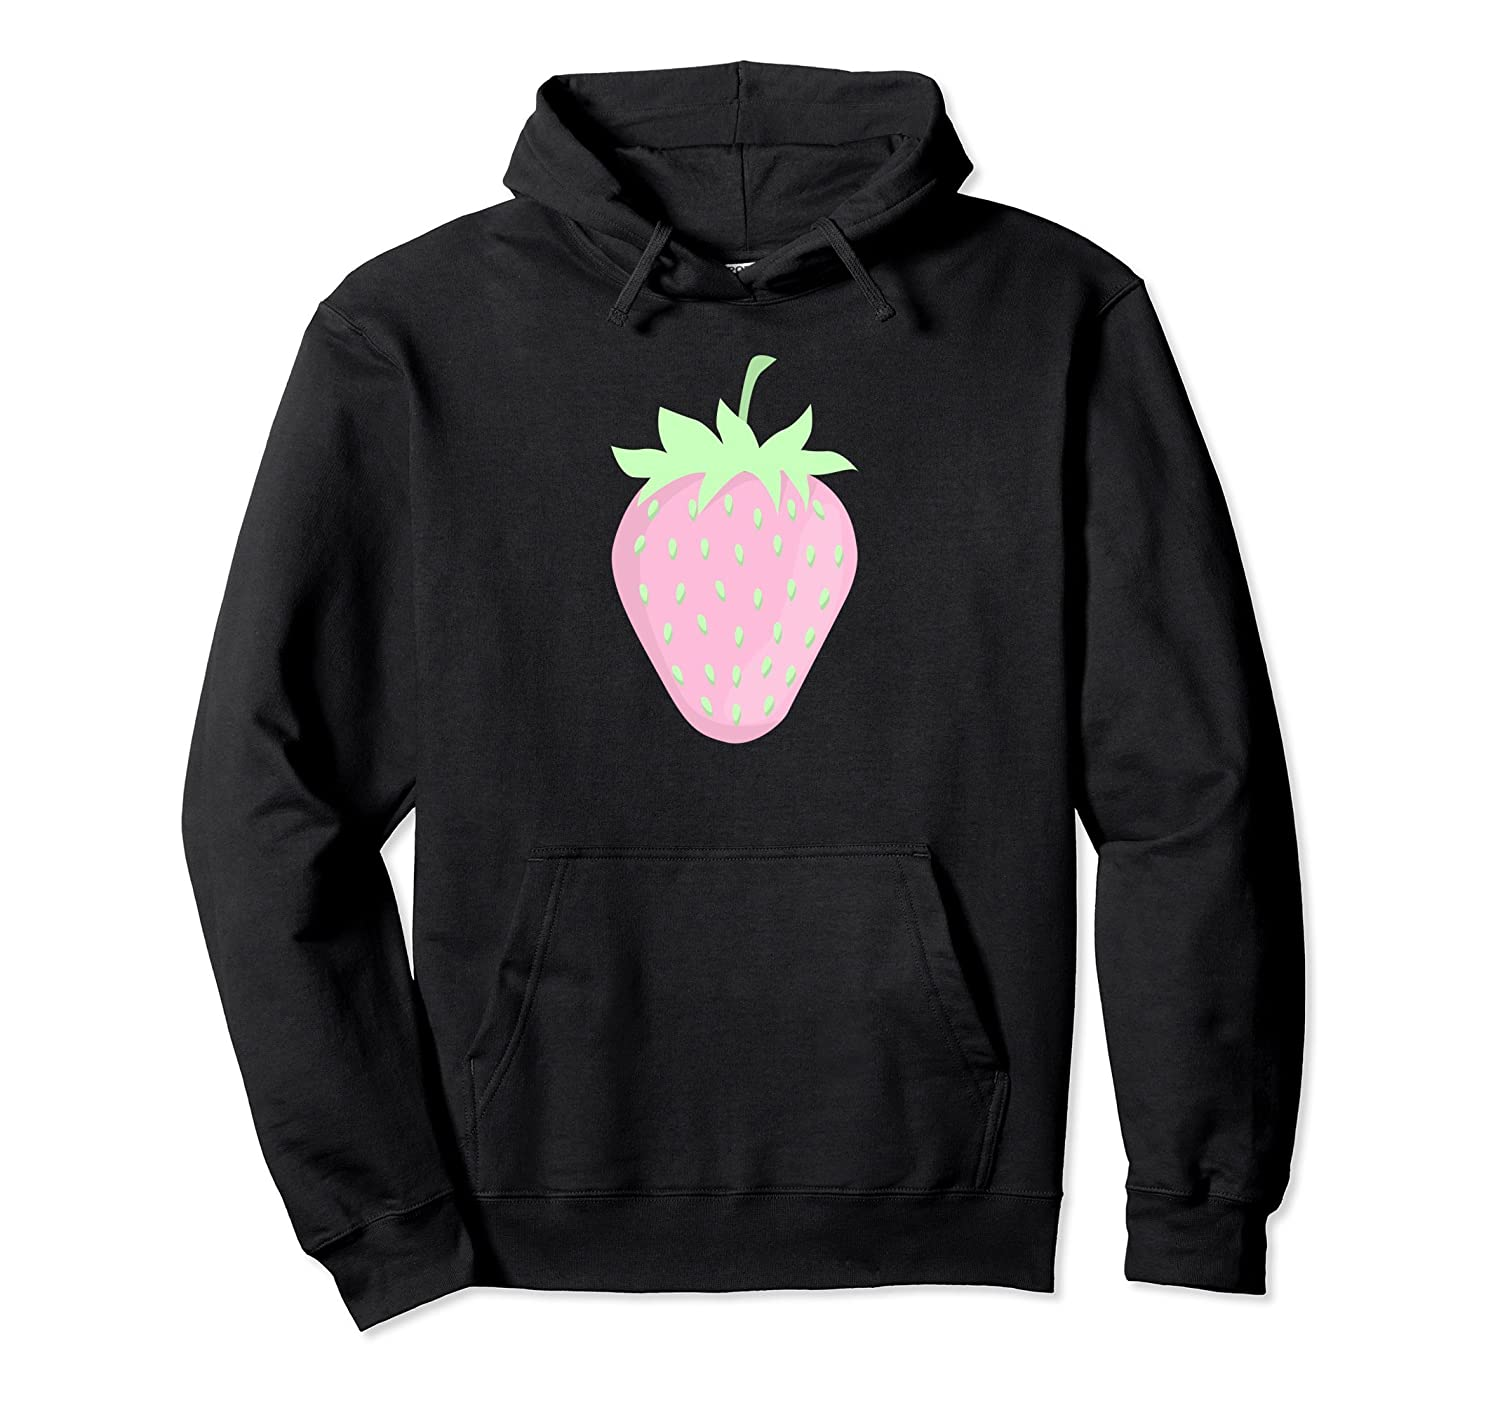 Aesthetic Clothing For Girls, Pastel Goth Hoodie-mt